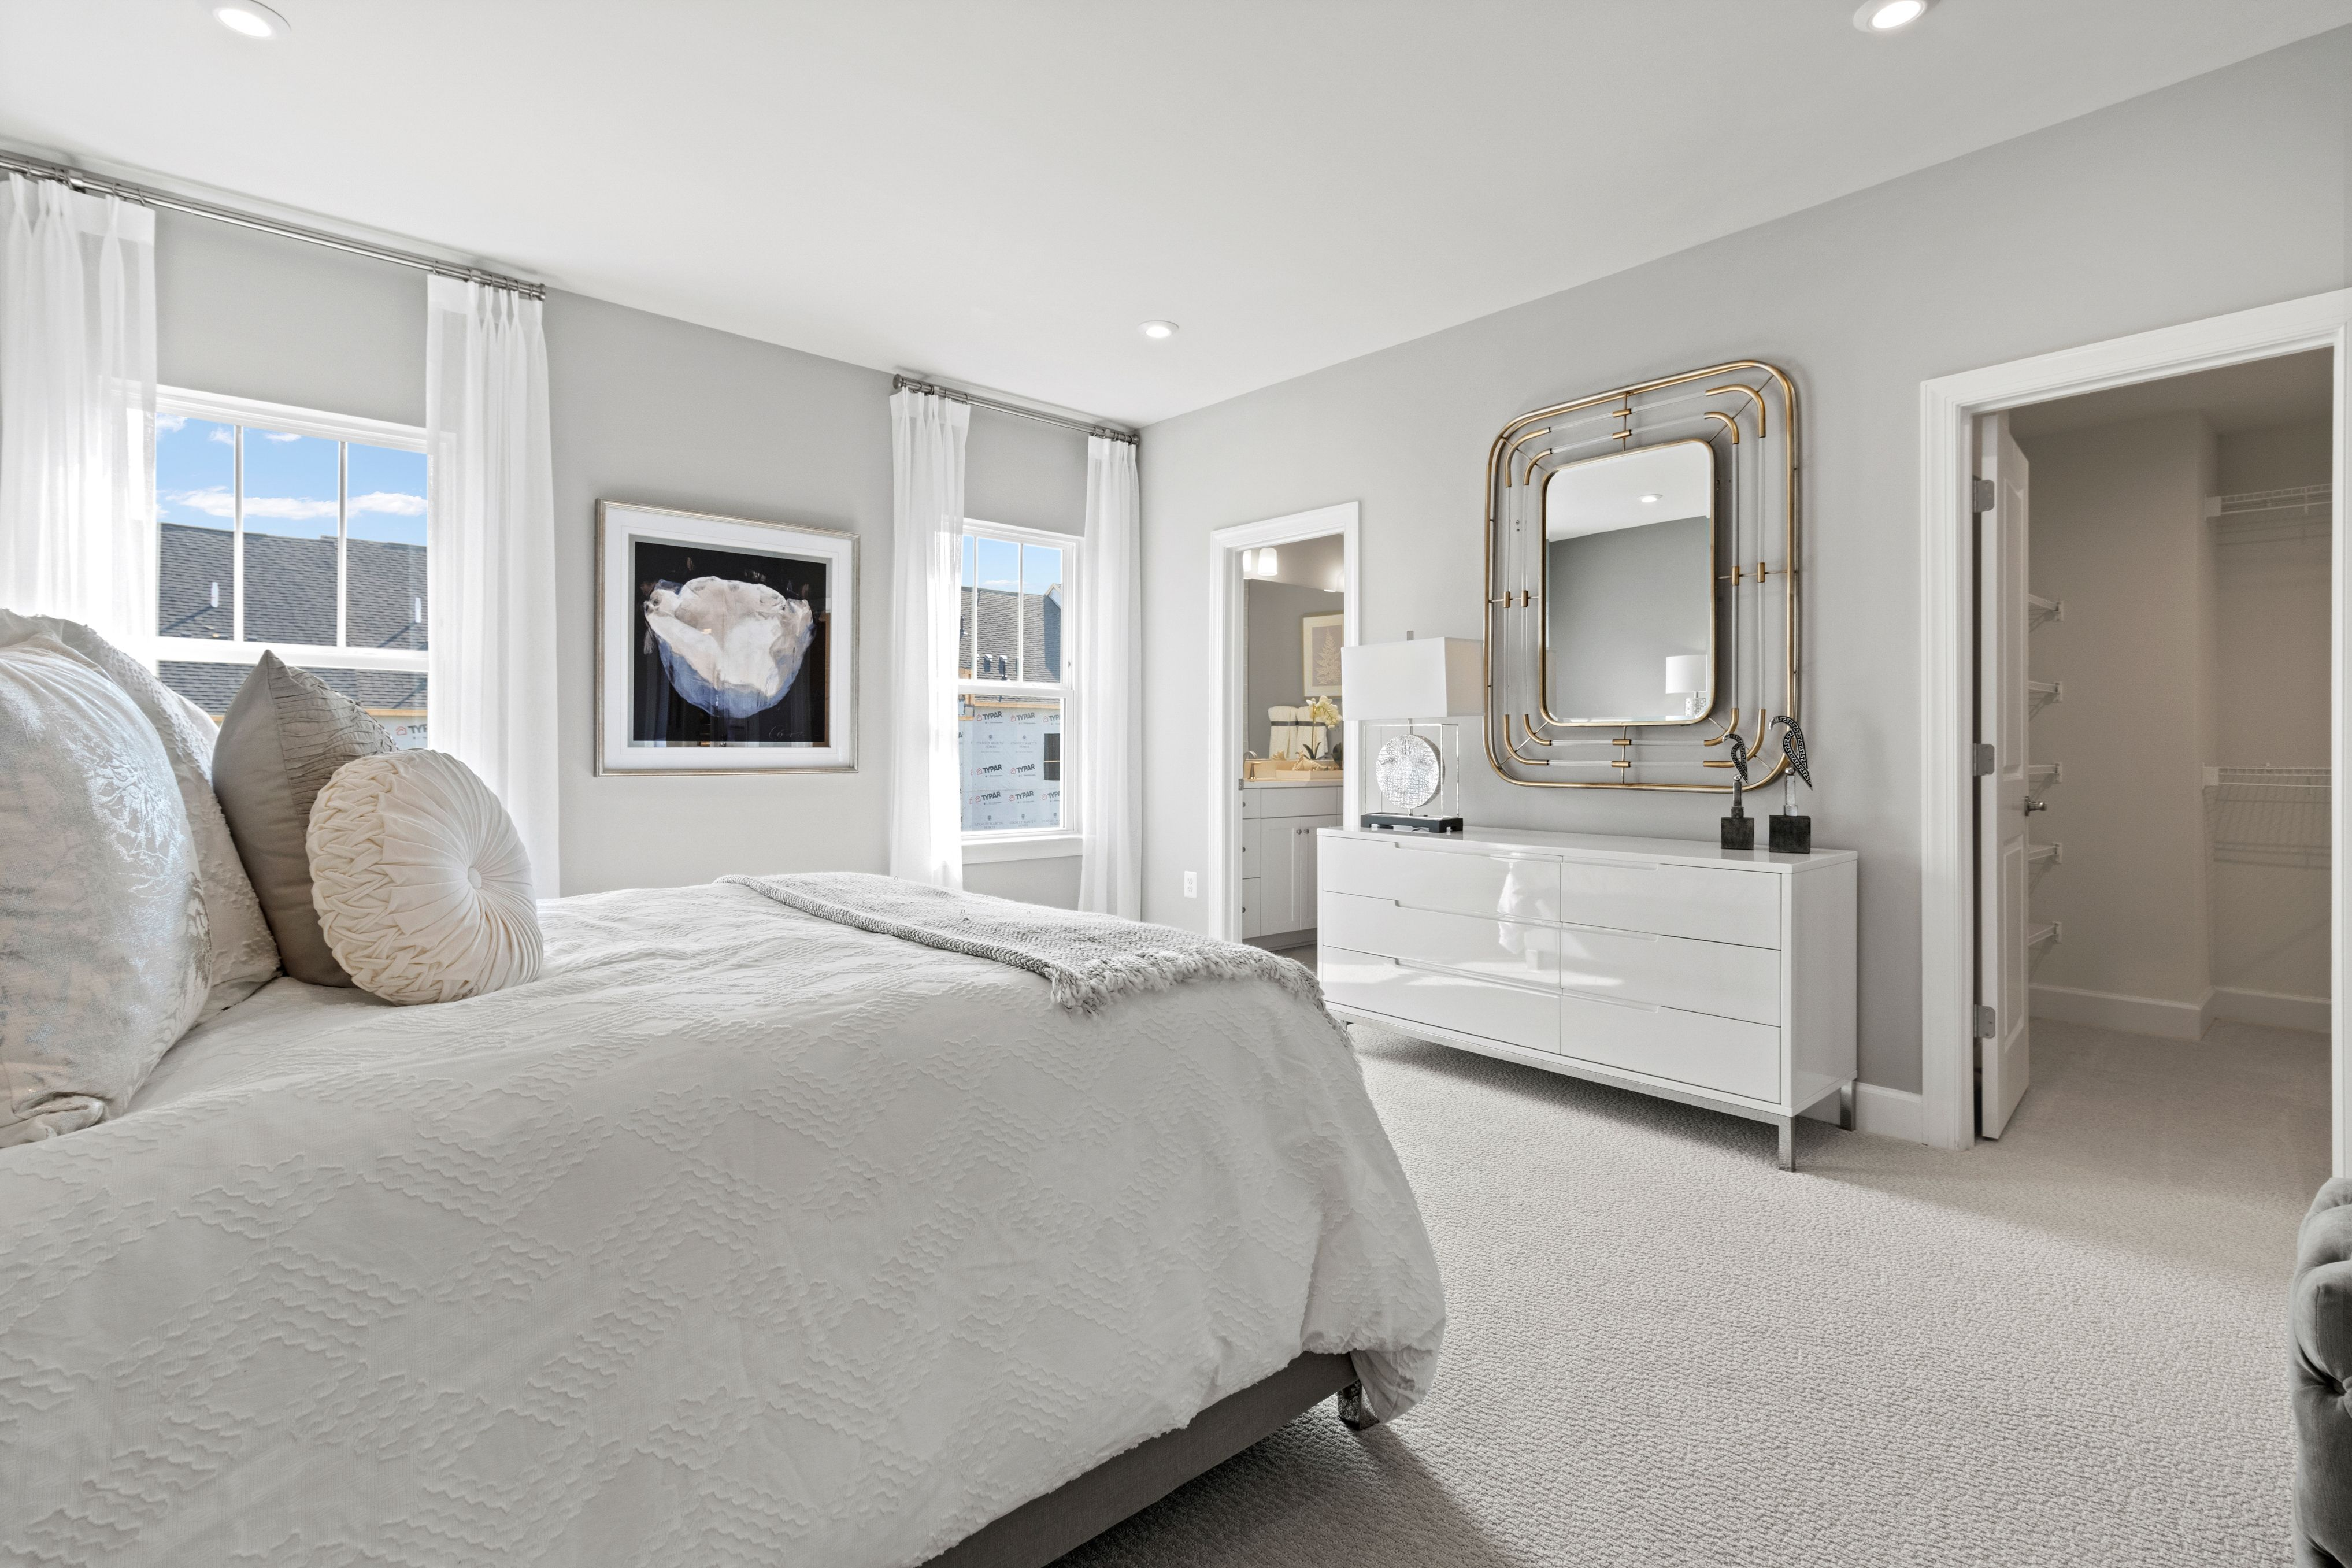 Bedroom featured in The Everett By Stanley Martin Homes in Baltimore, MD